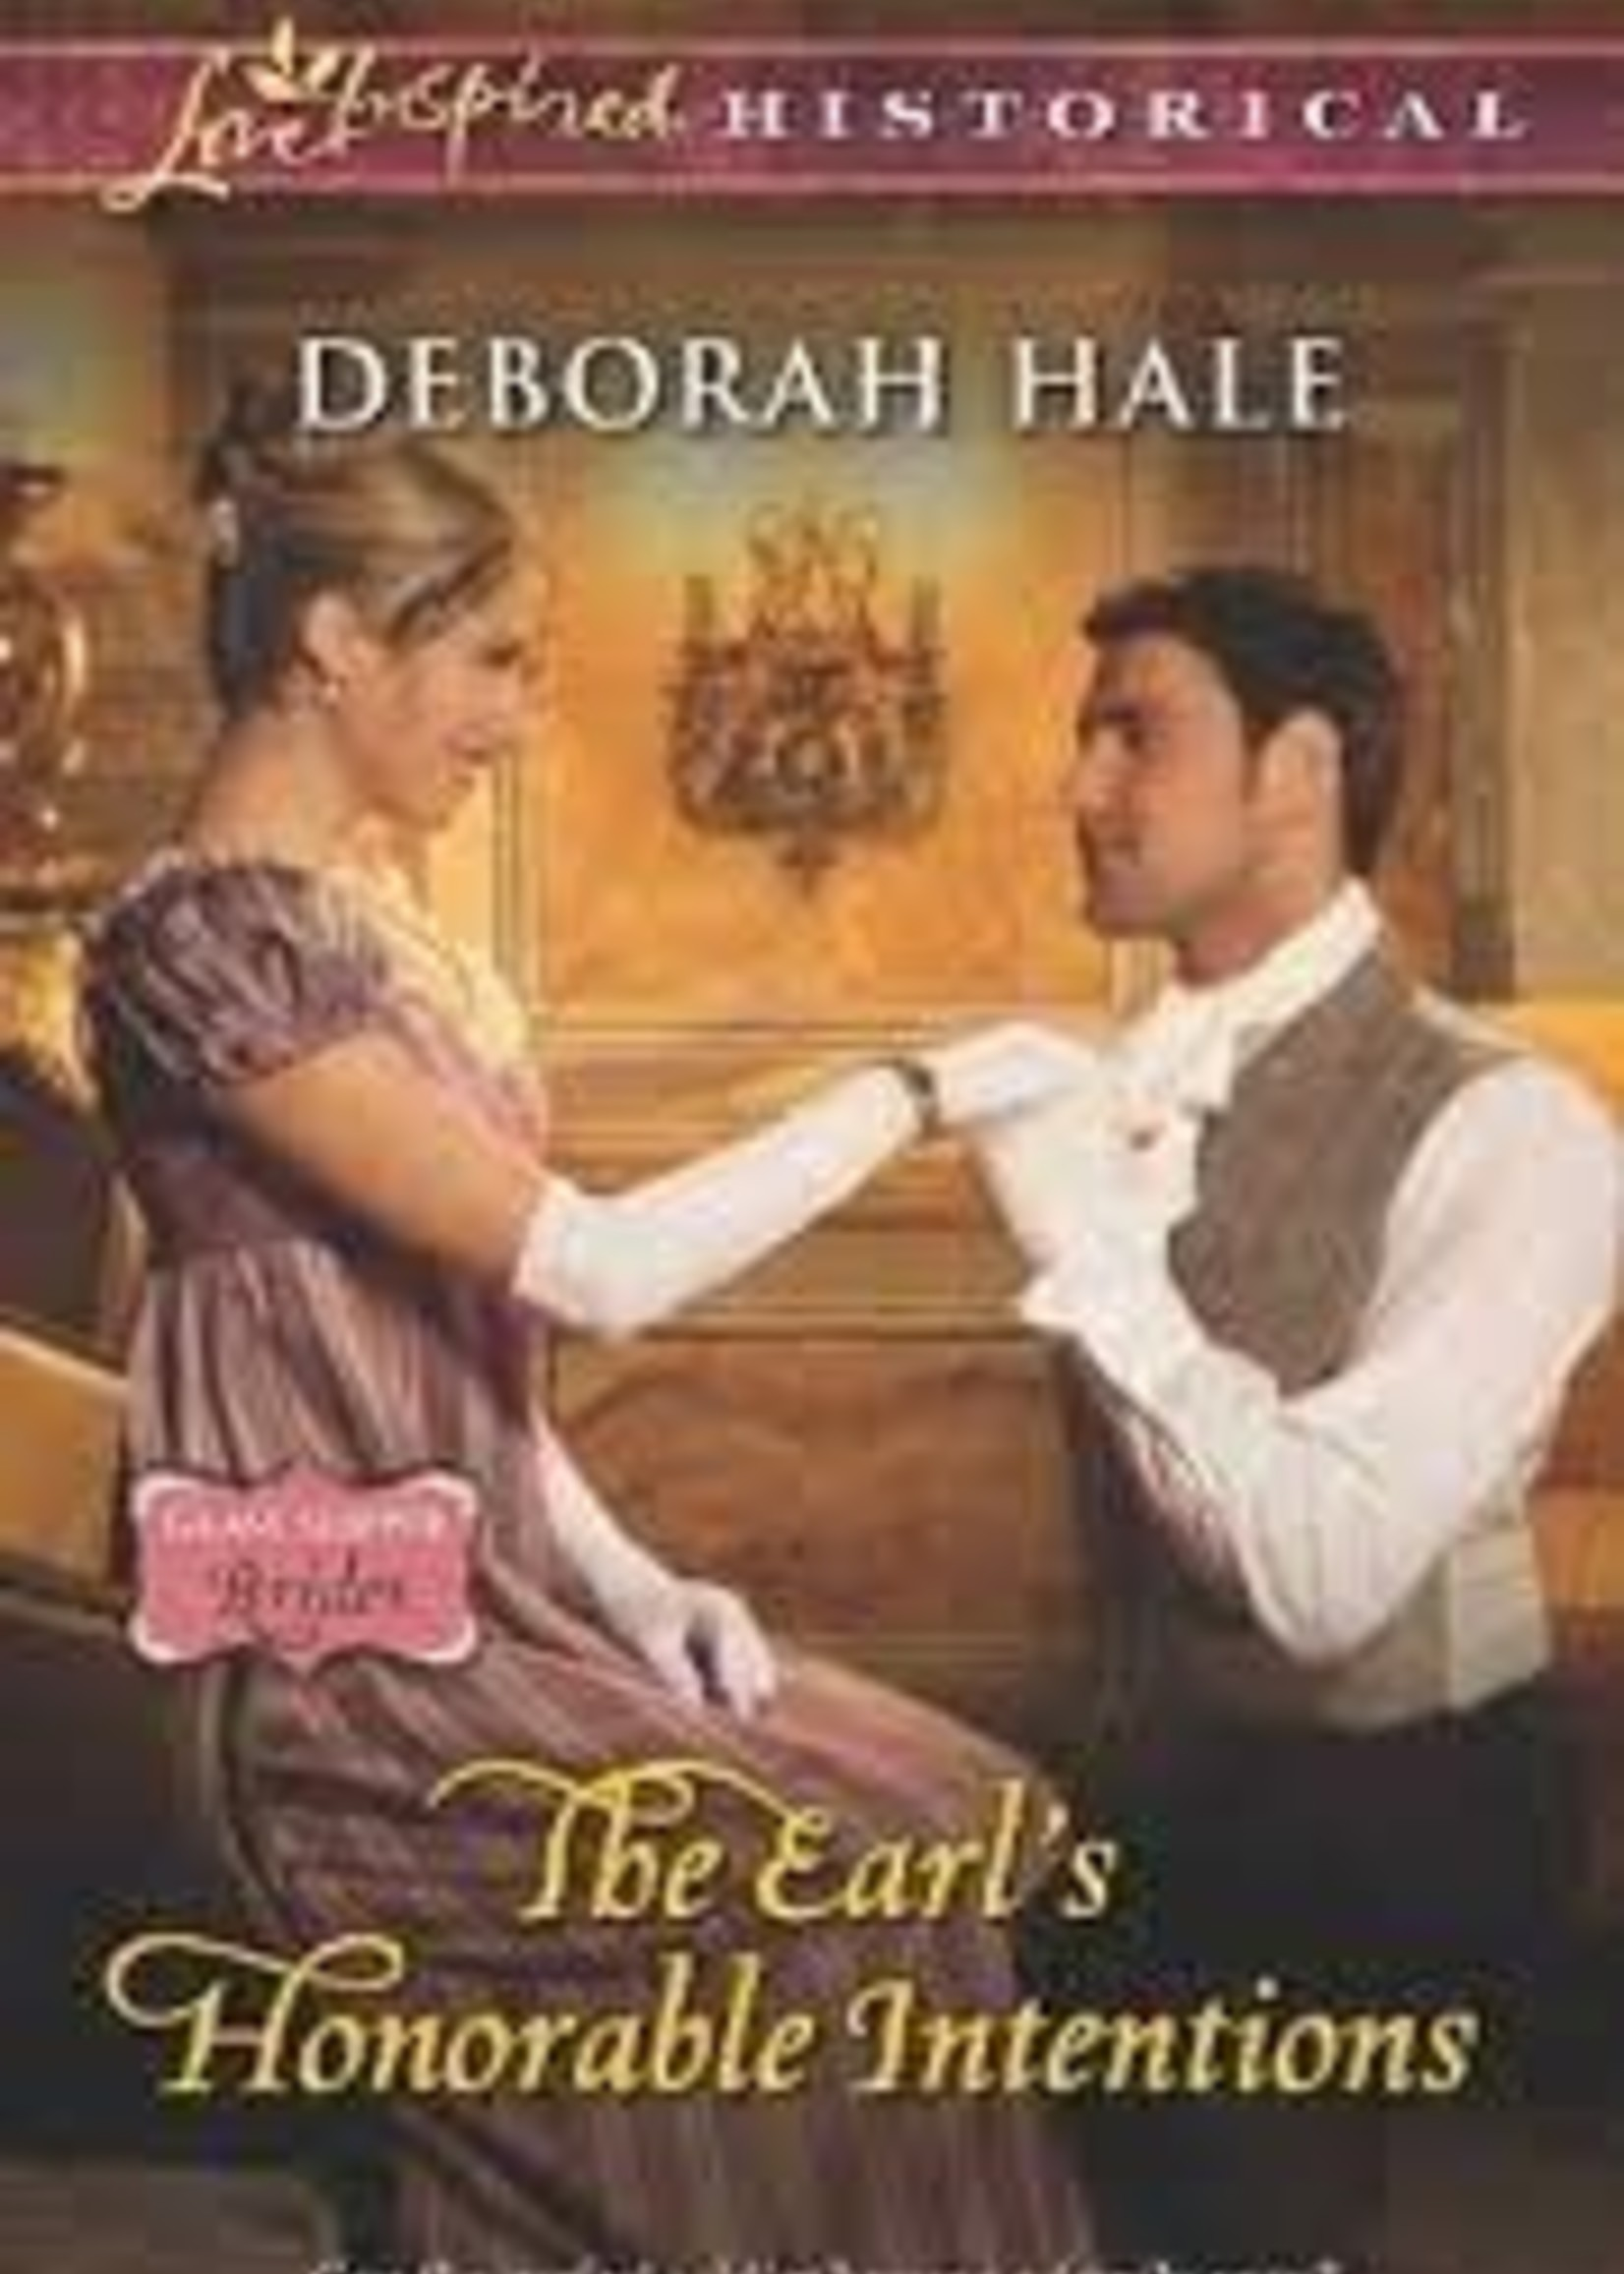 The Earl's Honorable Intentions by Deborah Hale